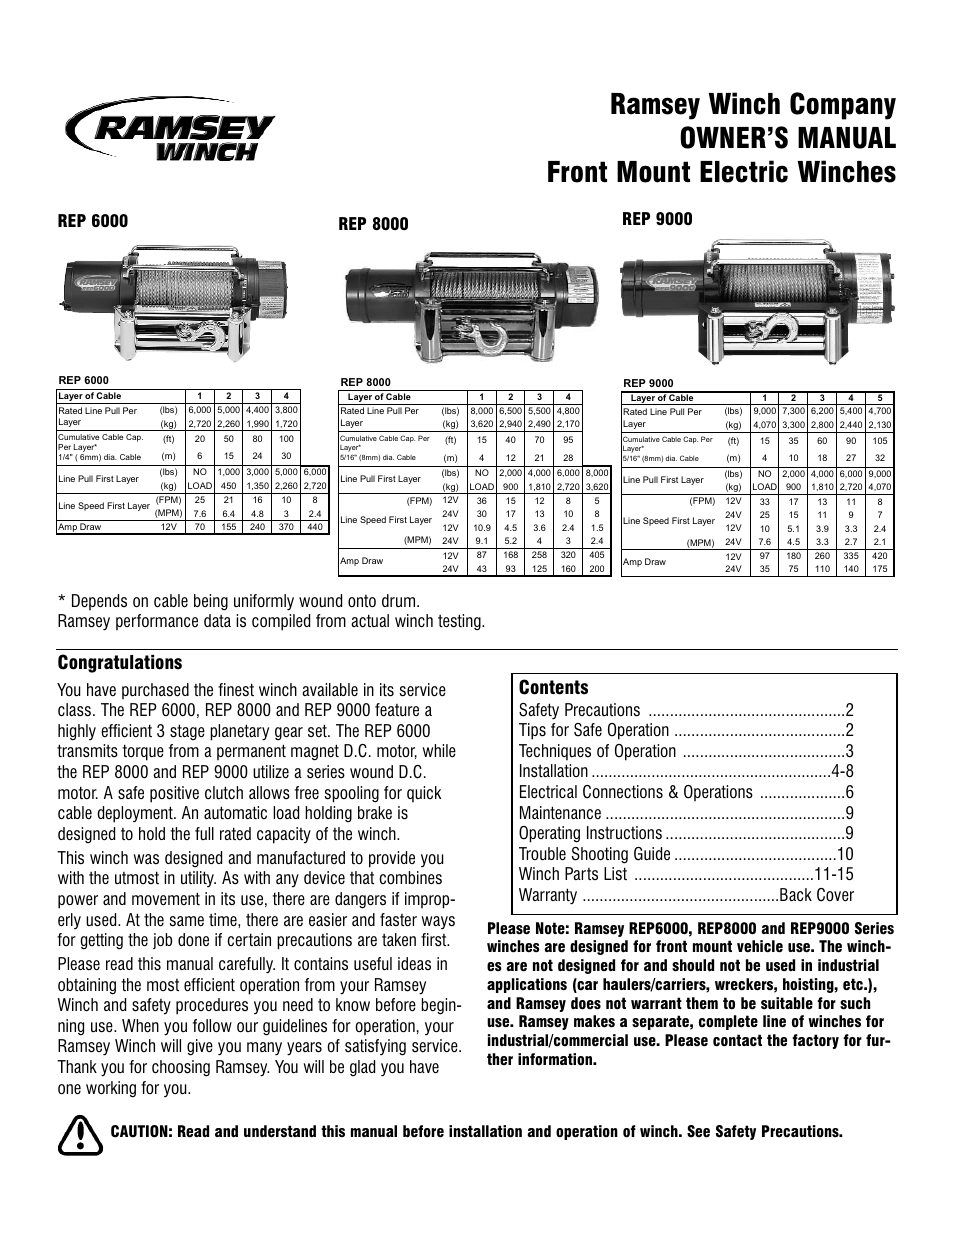 ramsey winch rep 6000_8000_9000 current page1 ramsey winch rep 6000 8000 9000 current user manual 16 pages ramsey rep 8000 wiring diagram at aneh.co